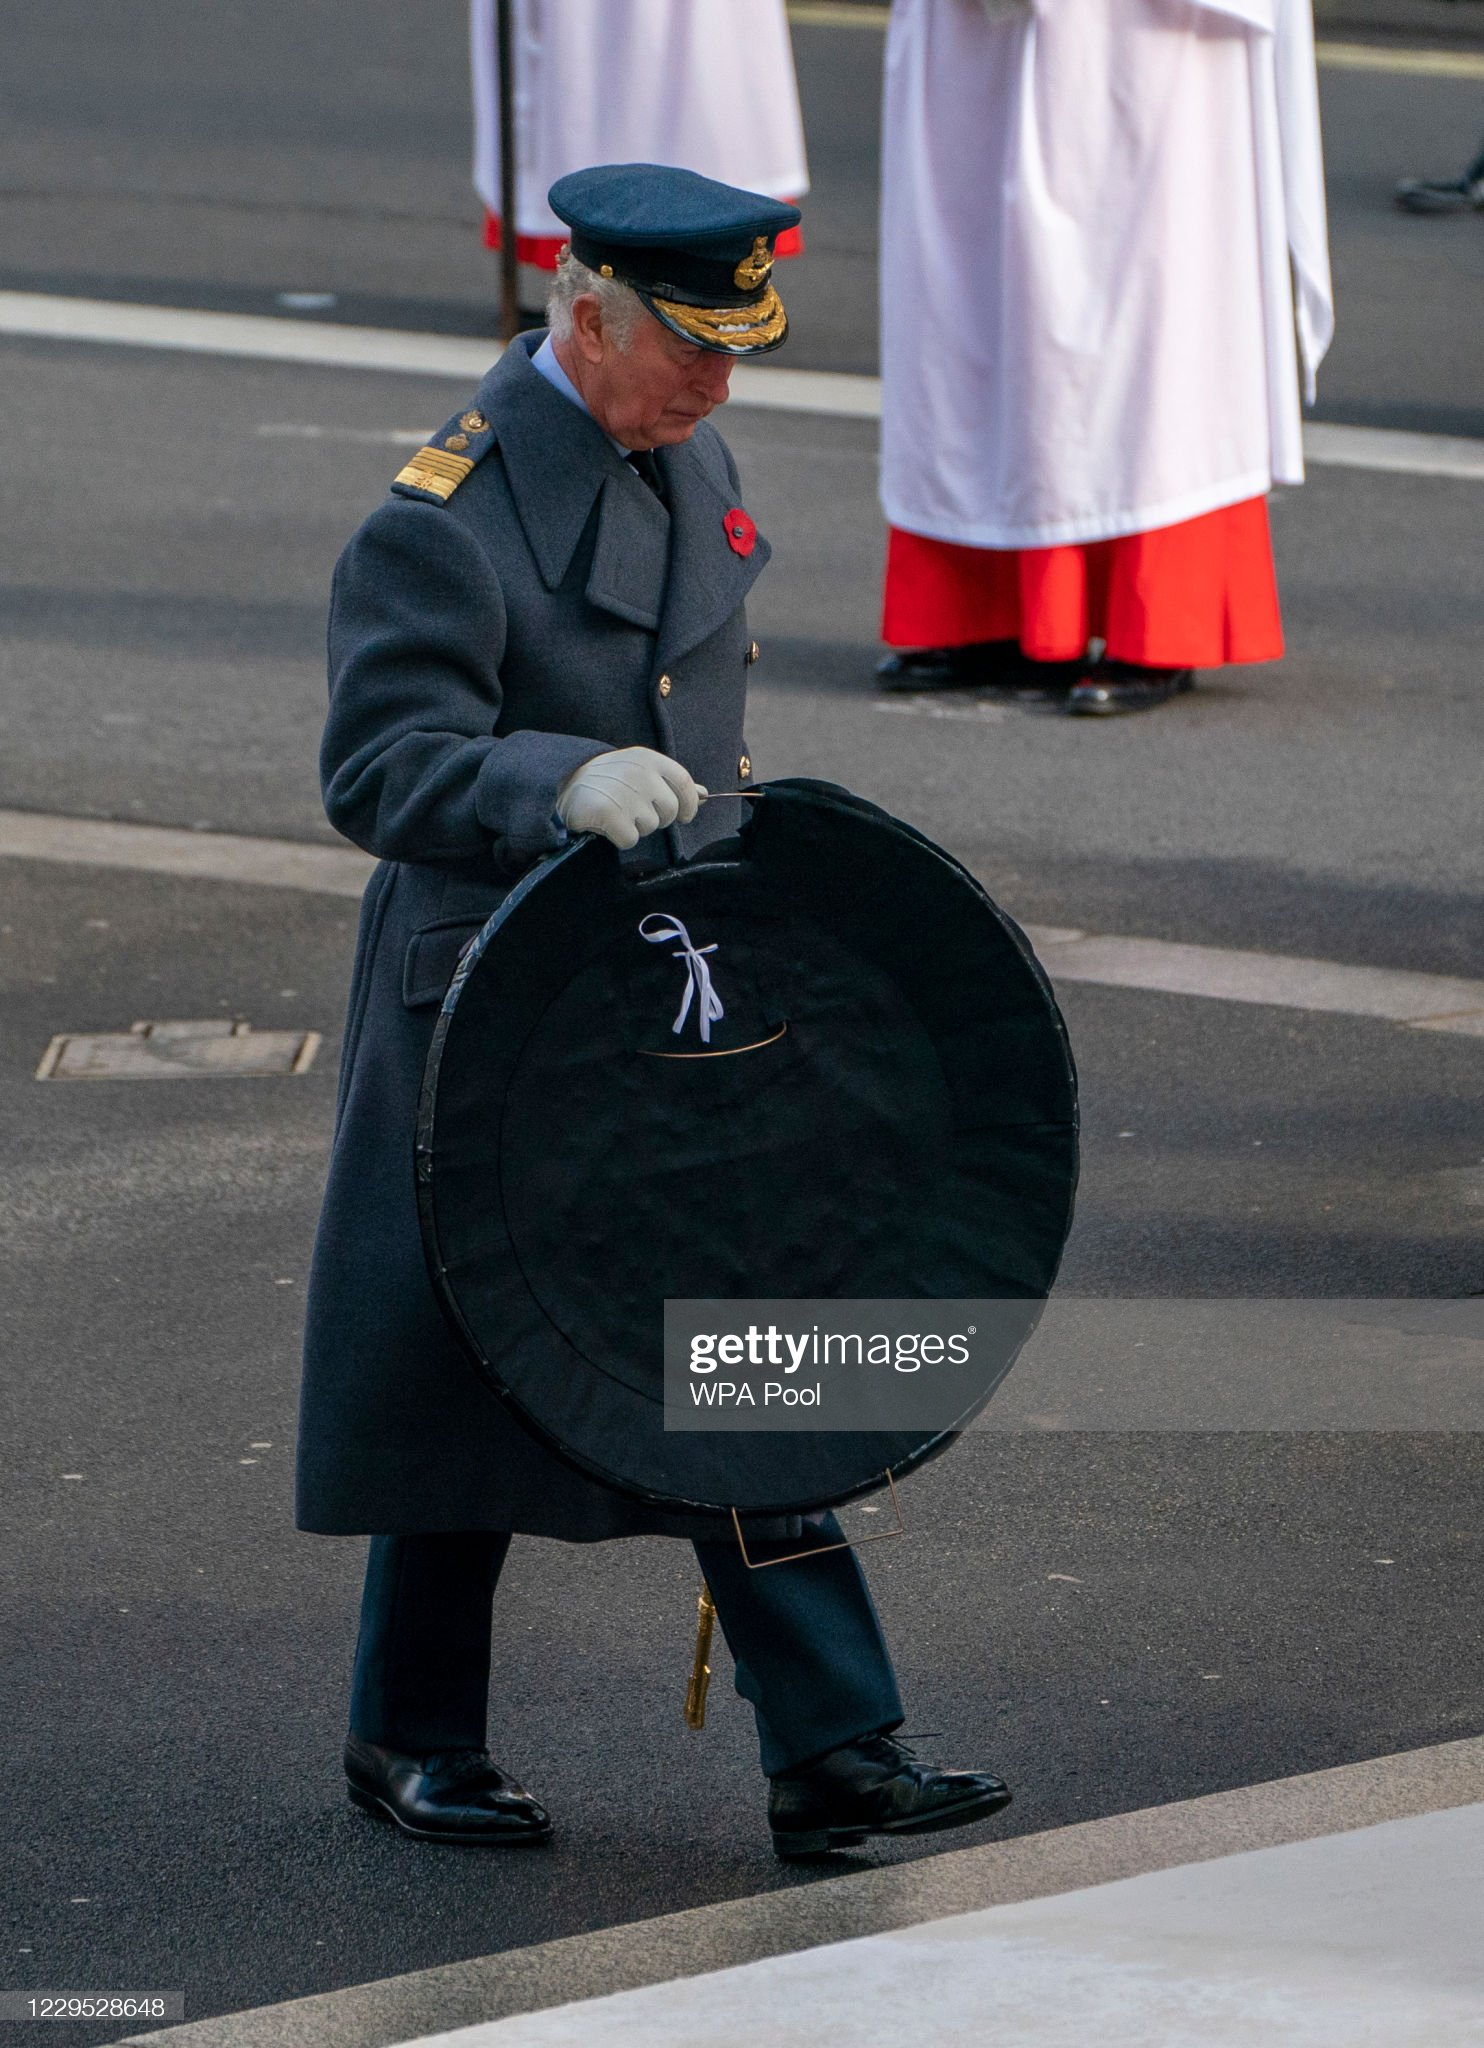 https://media.gettyimages.com/photos/britains-prince-charles-prince-of-wales-attends-the-national-service-picture-id1229528648?s=2048x2048